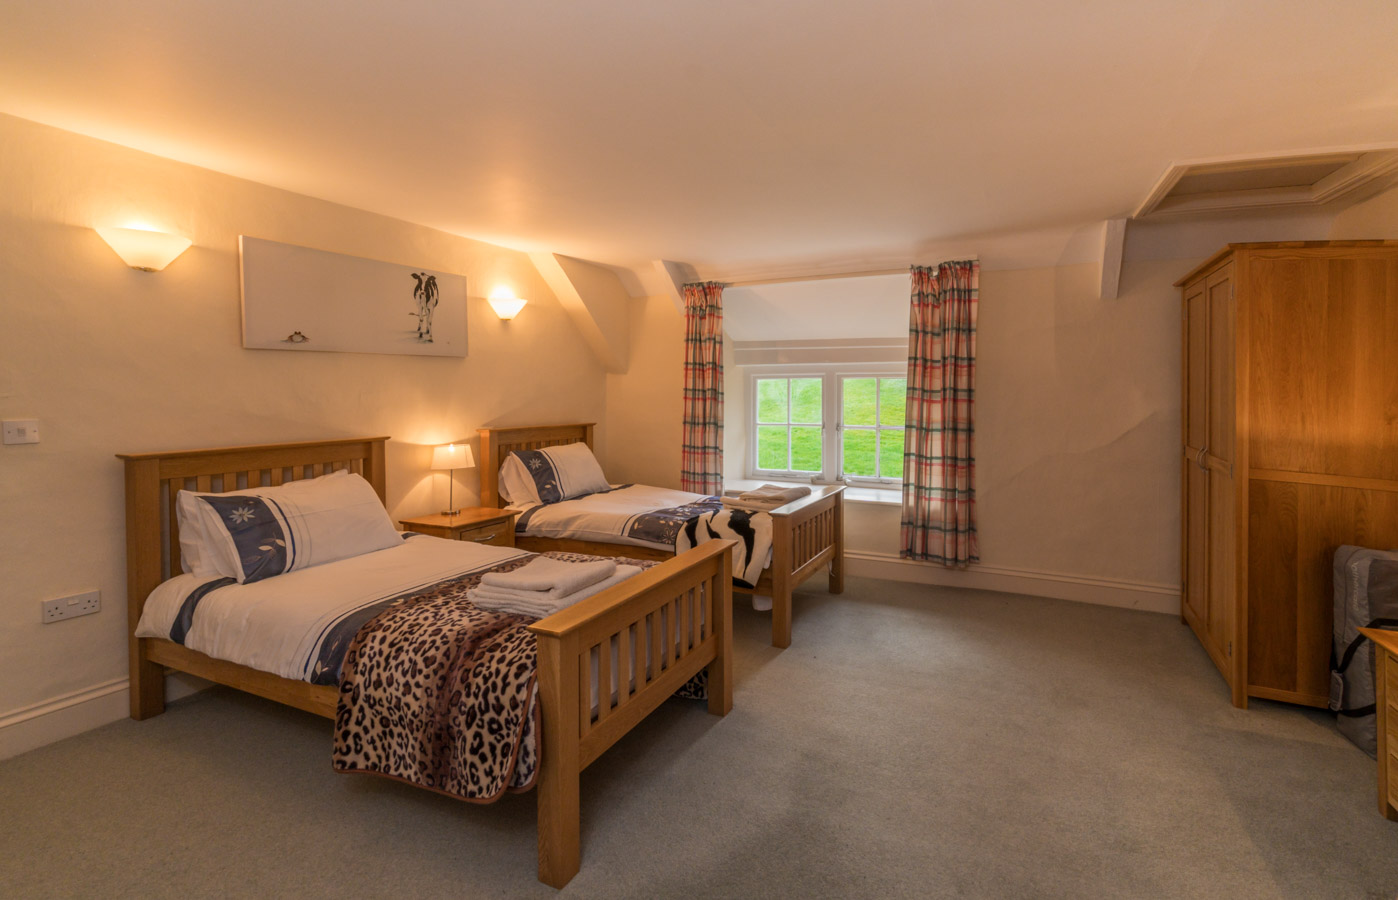 Self-Catering-Holiday-Farmhouse-West-Dorset-Nr-Charmouth-Lyme-Regis-9-guests-8